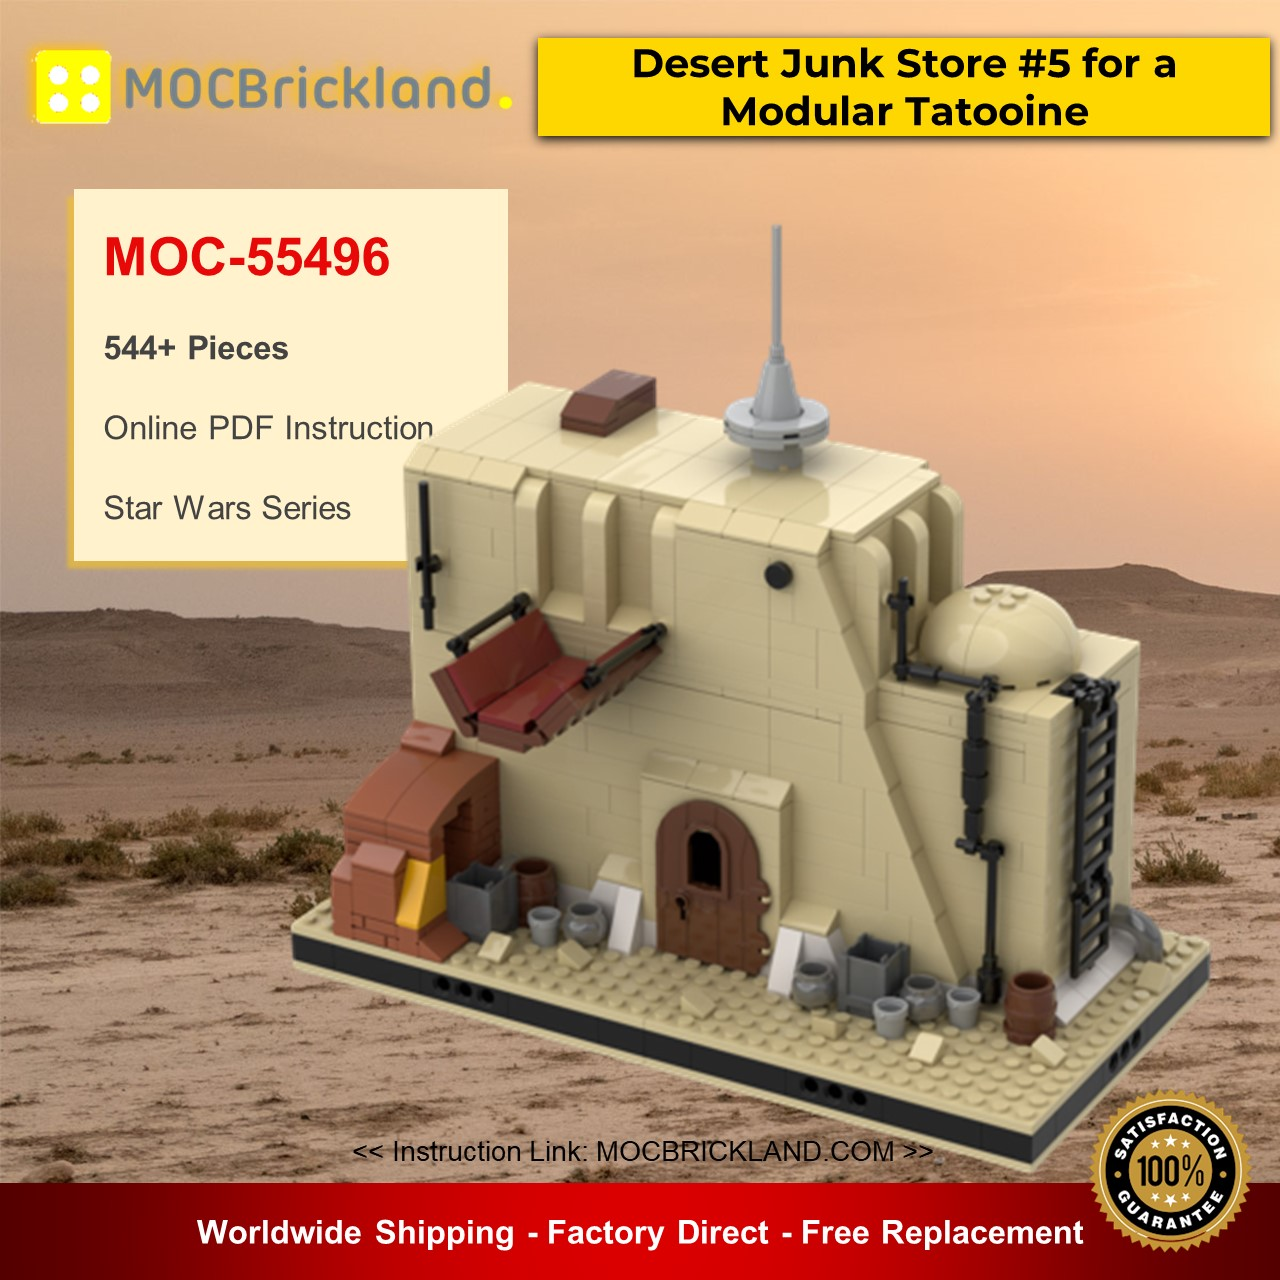 Desert Junk Store #5 for a Modular Tatooine MOC-55496 Star Wars Designed By gabizon With 544 Pieces